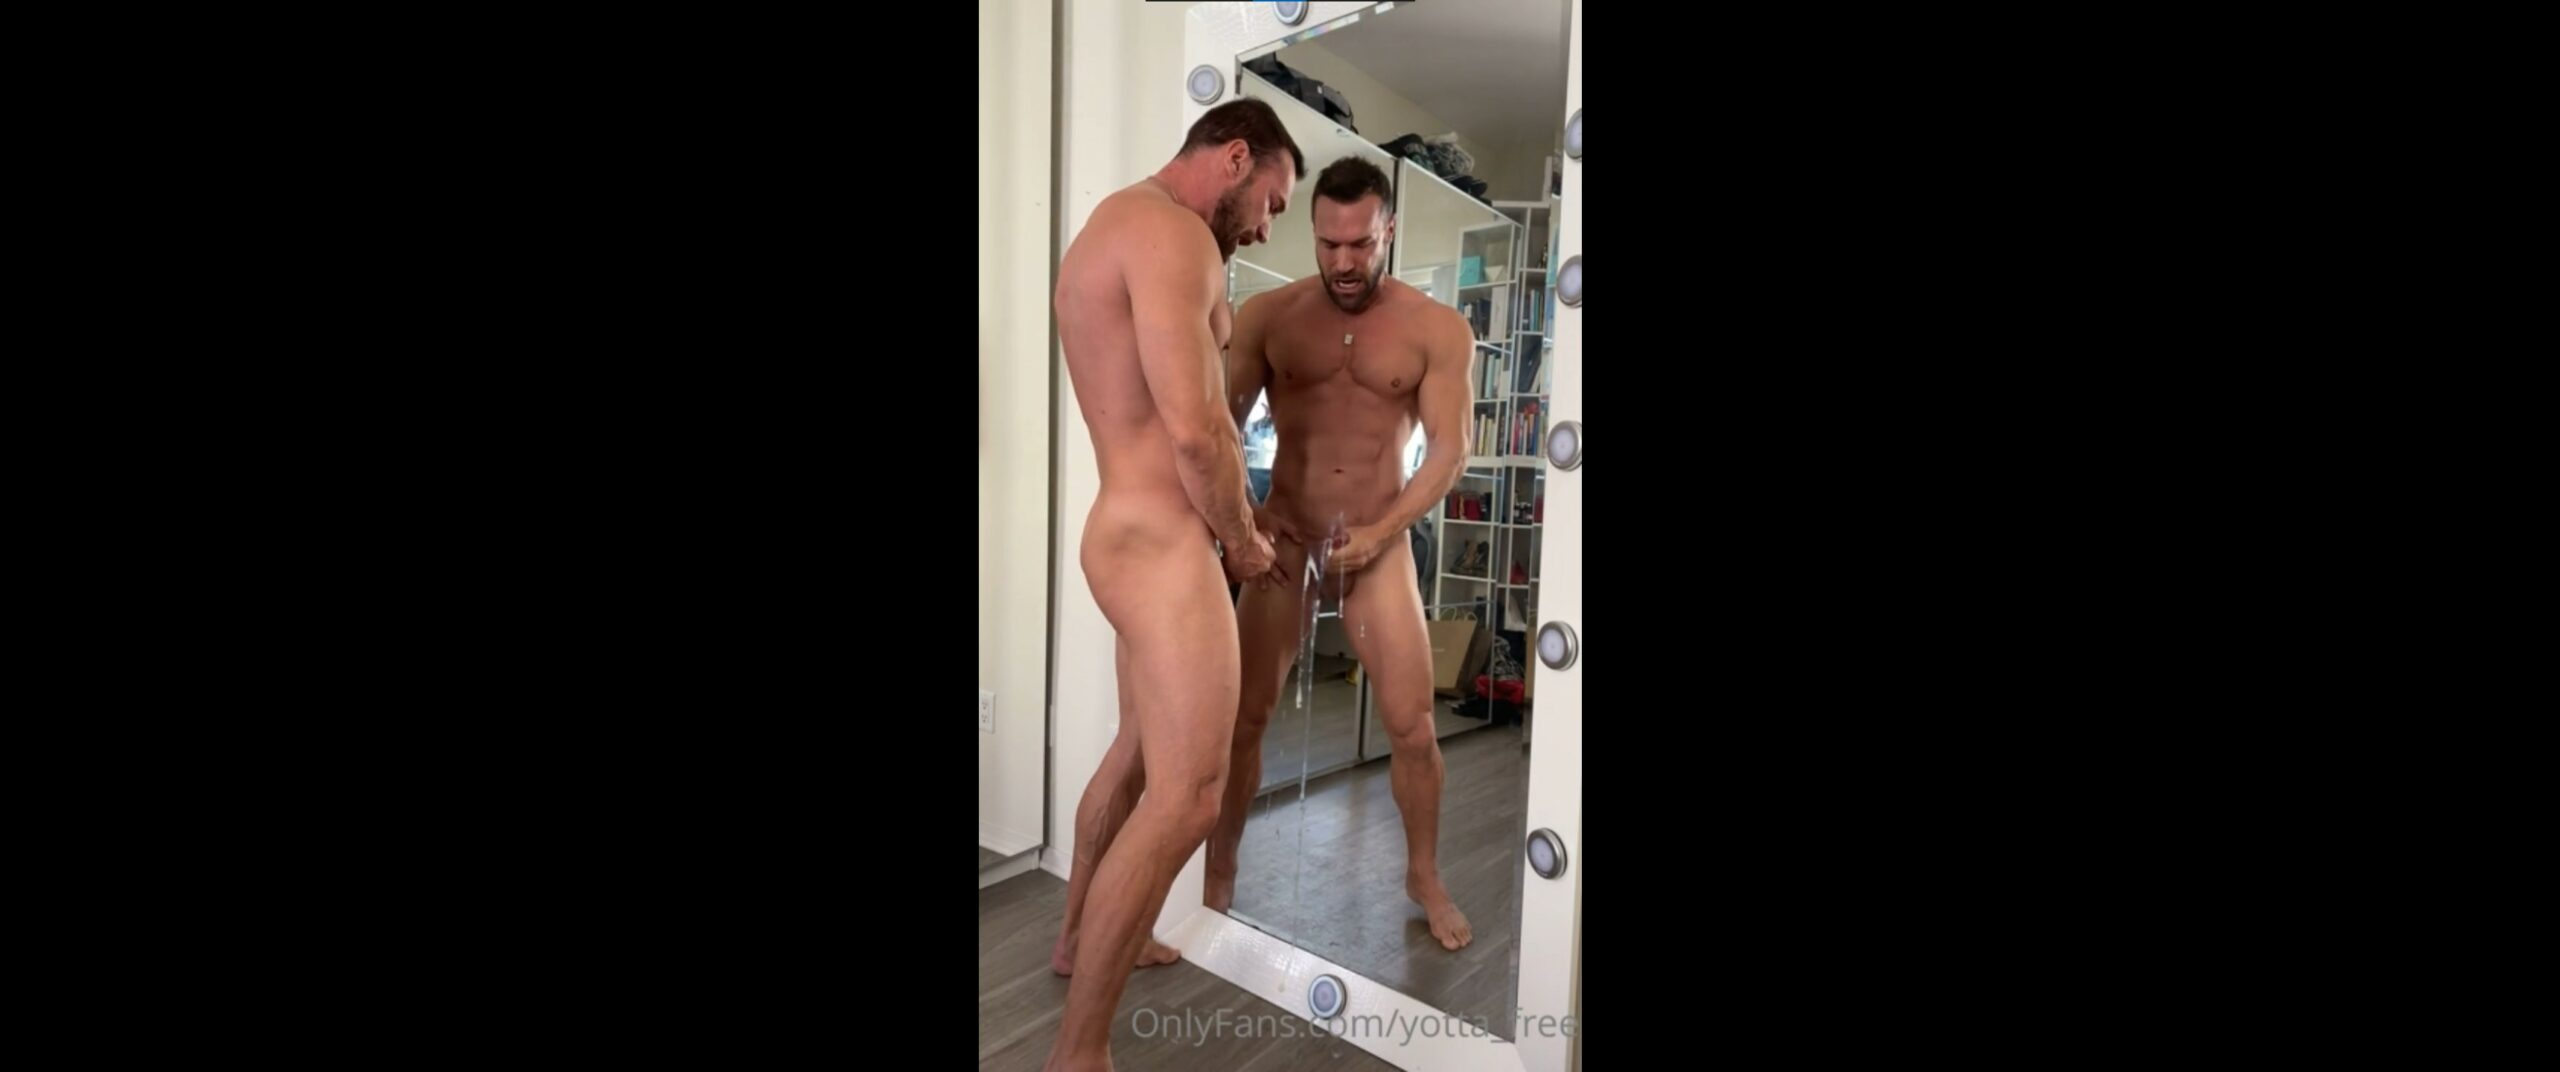 Jerking off and shooting a big load over my mirror - Bastian Yotta (yottalife)